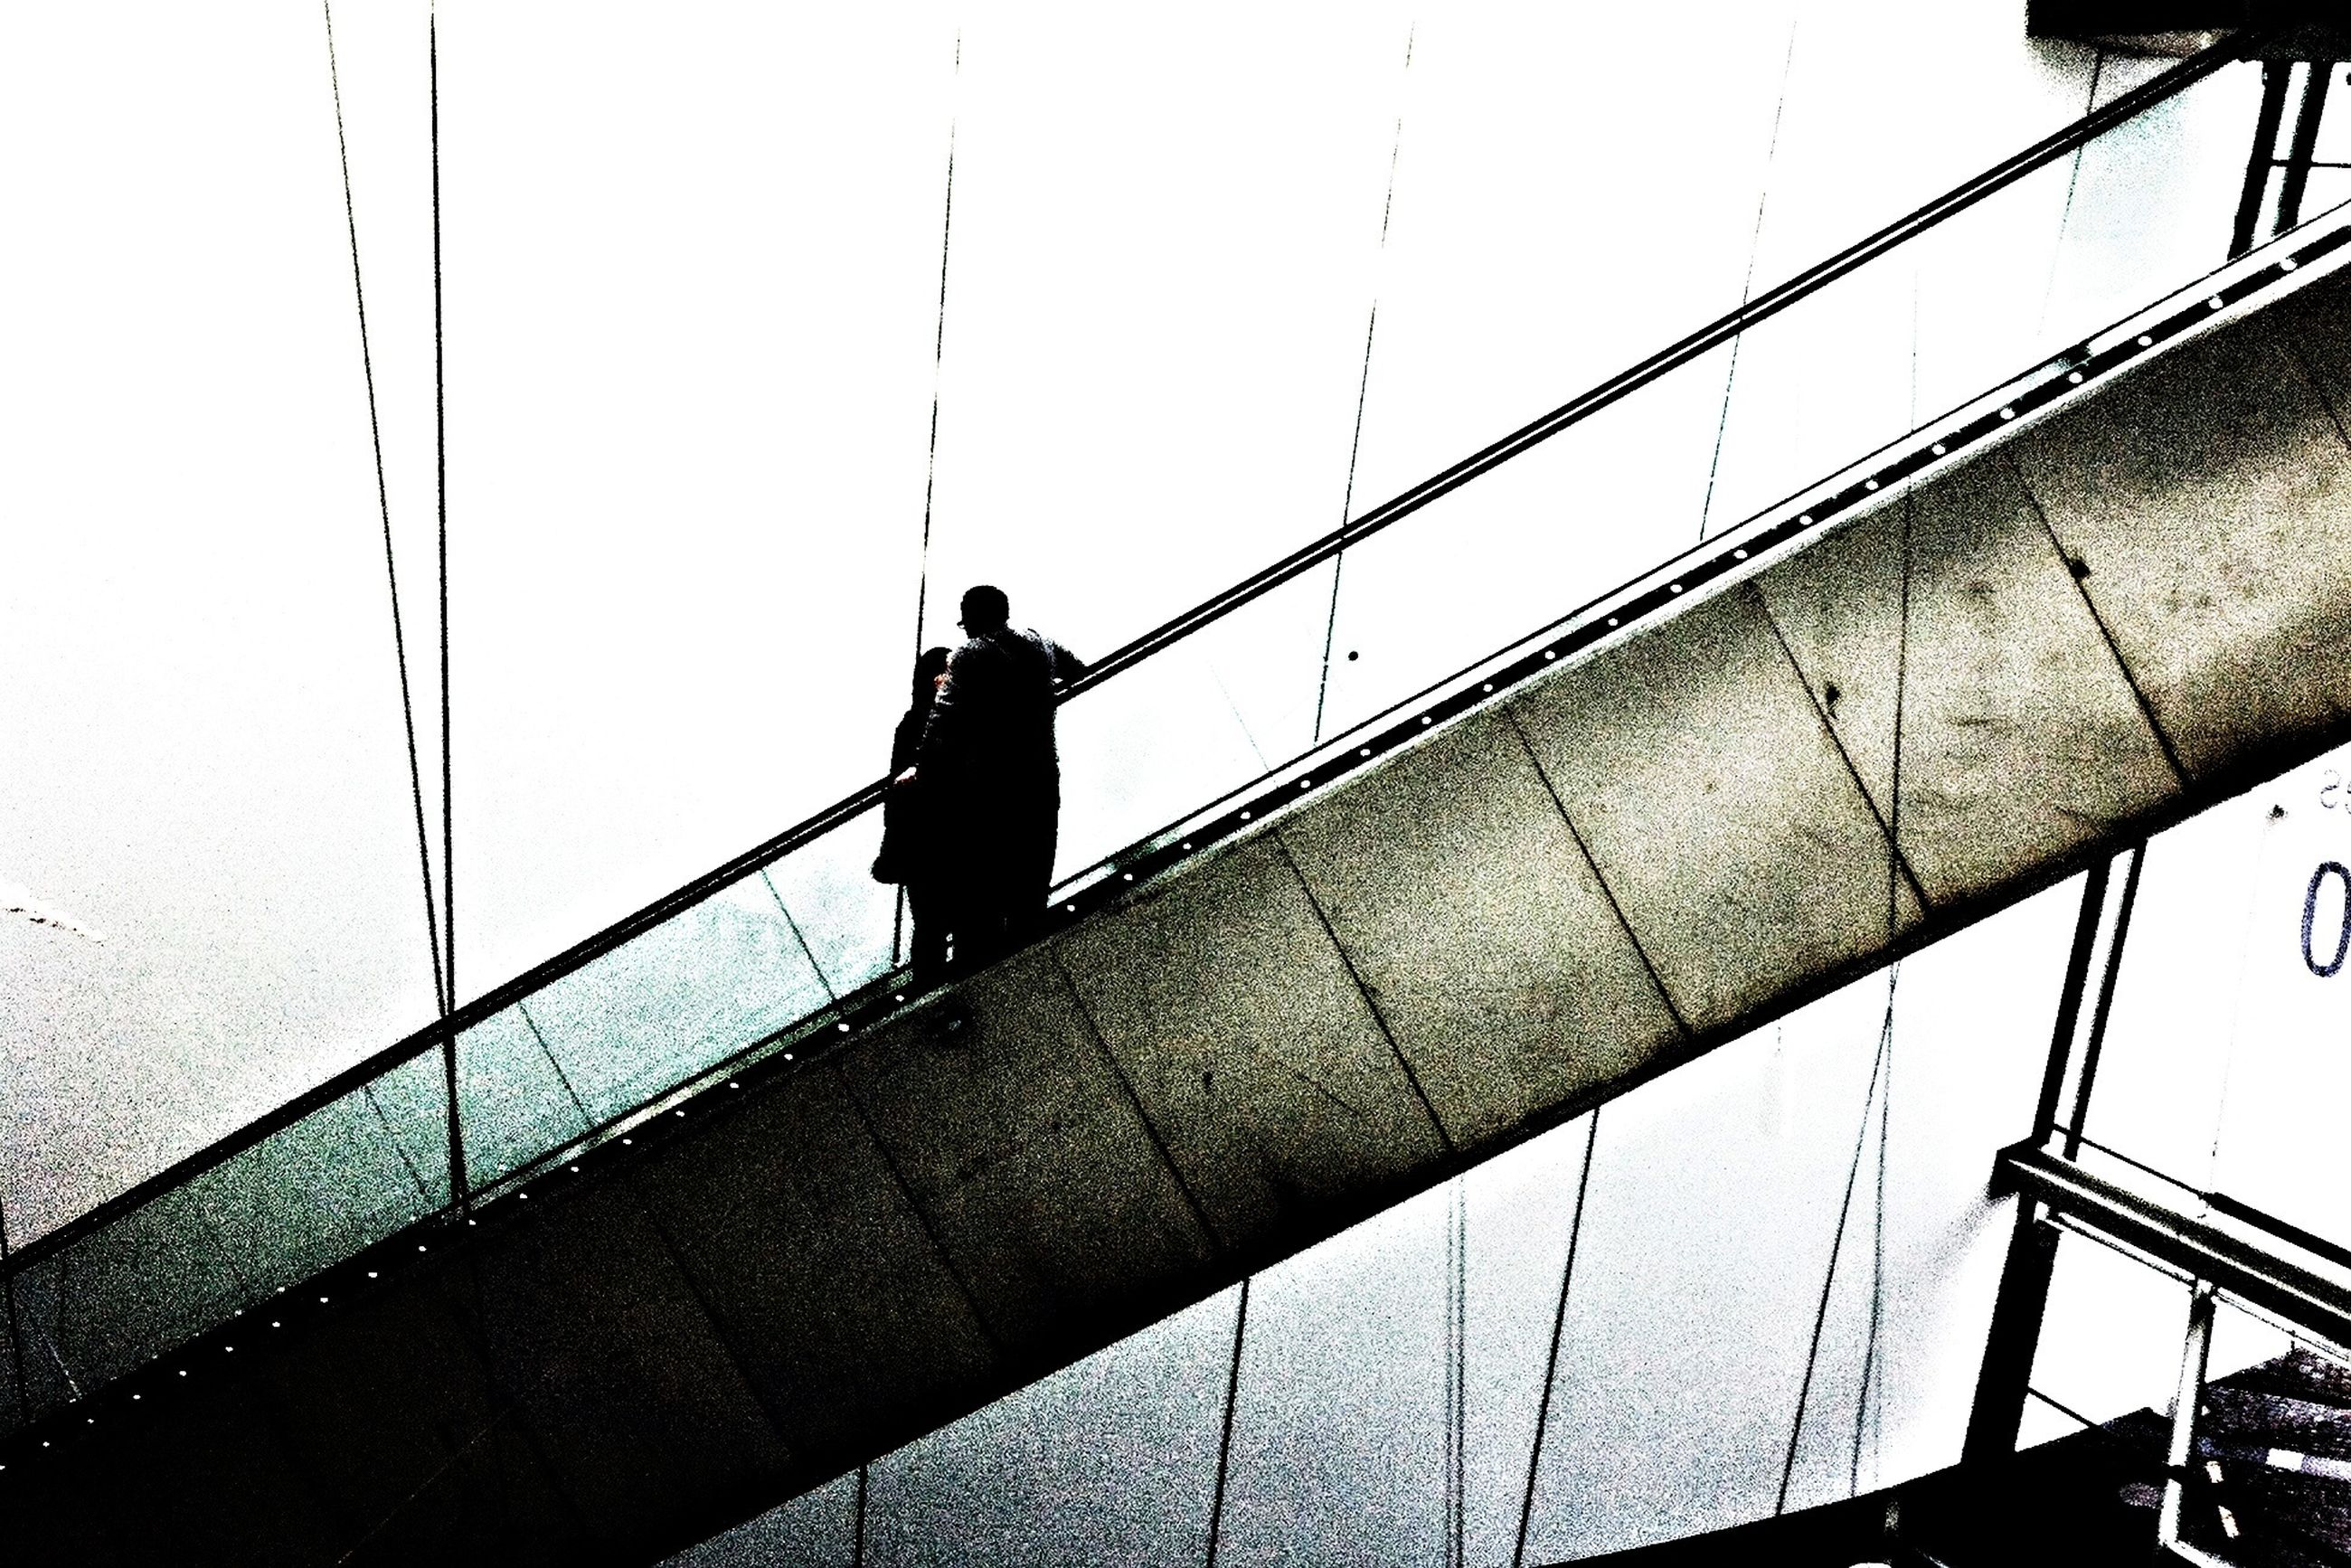 railing, lifestyles, men, leisure activity, low angle view, full length, built structure, standing, silhouette, bridge - man made structure, sky, transportation, metal, architecture, connection, rear view, day